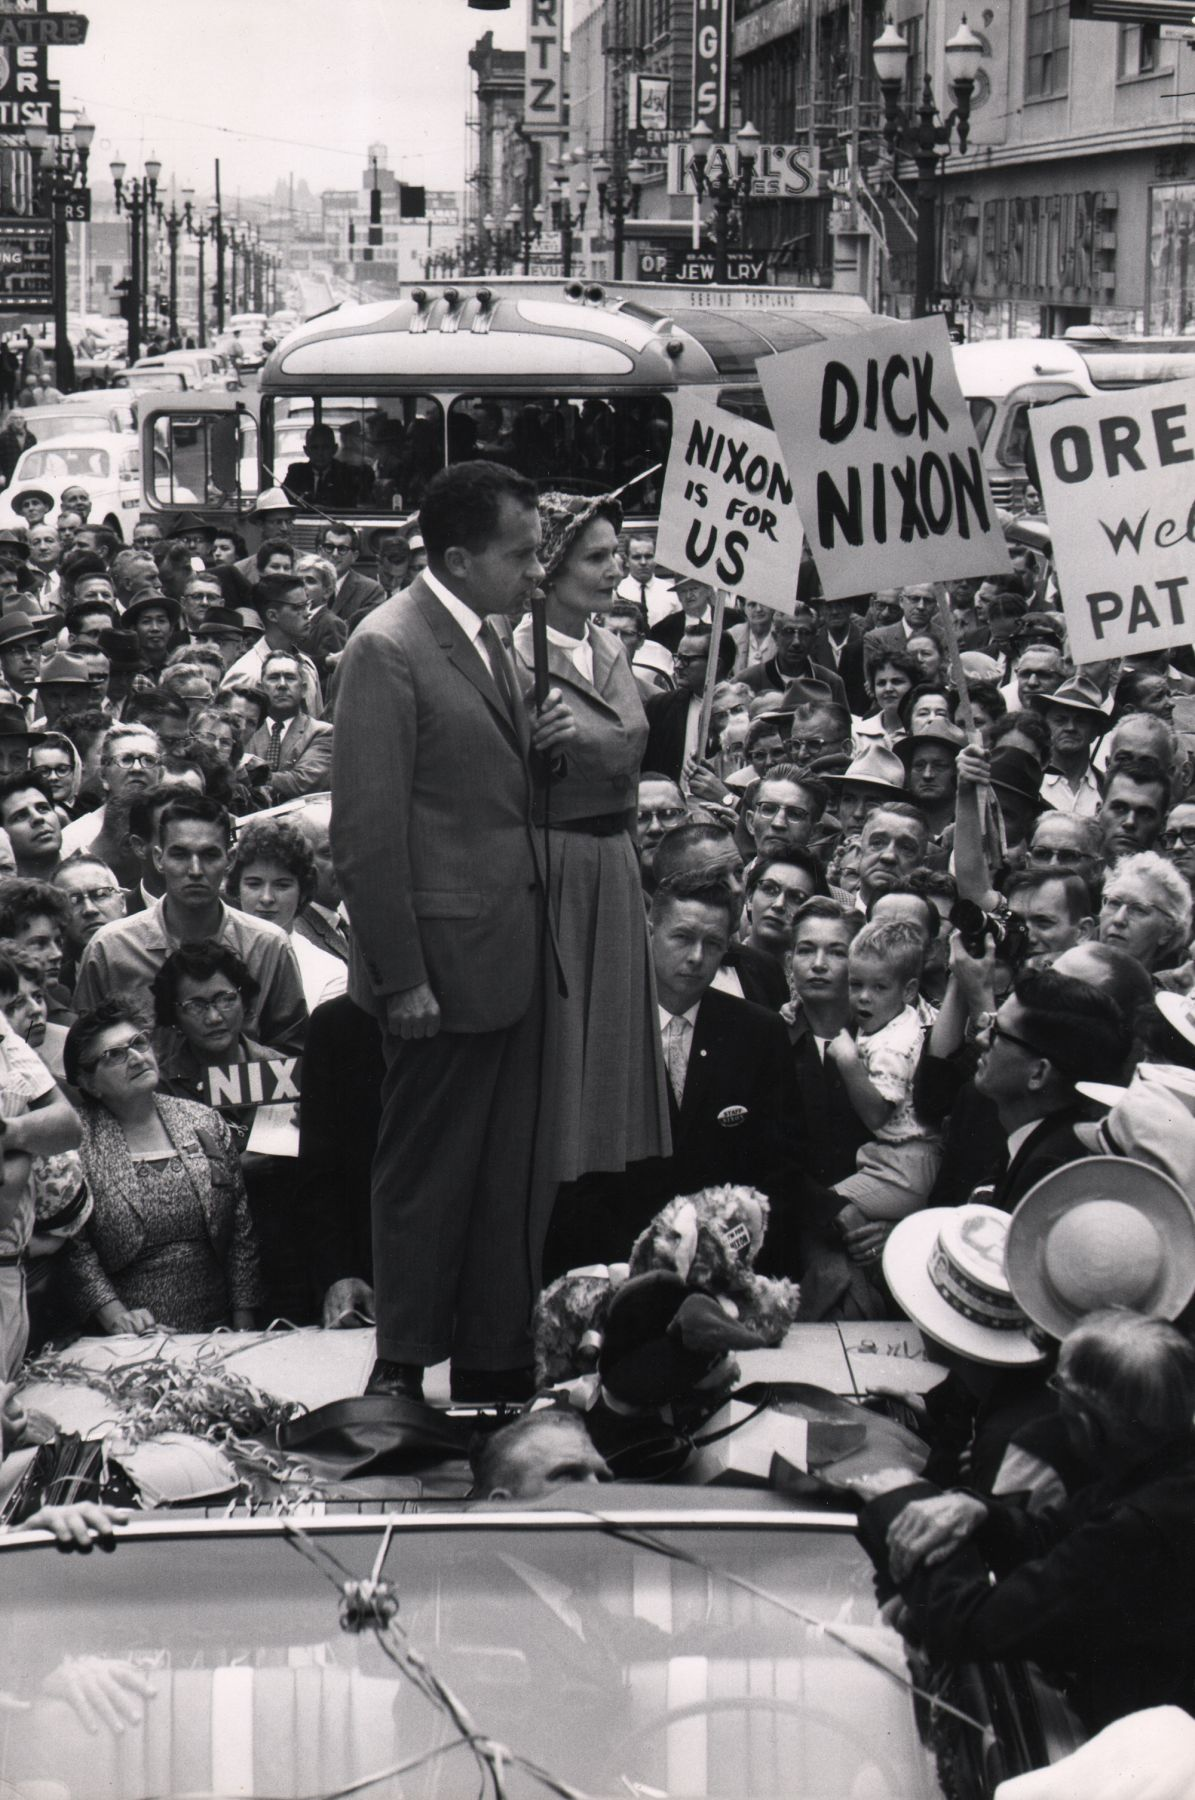 """Ed Clark, Nixon campaigning in the 1960 presidential election, 1960. Subject stands on the back of a car speaking into a microphone surrounded by a large crowd holding signs such as """"Nixon is for us"""" and """"Dick Nixon"""""""